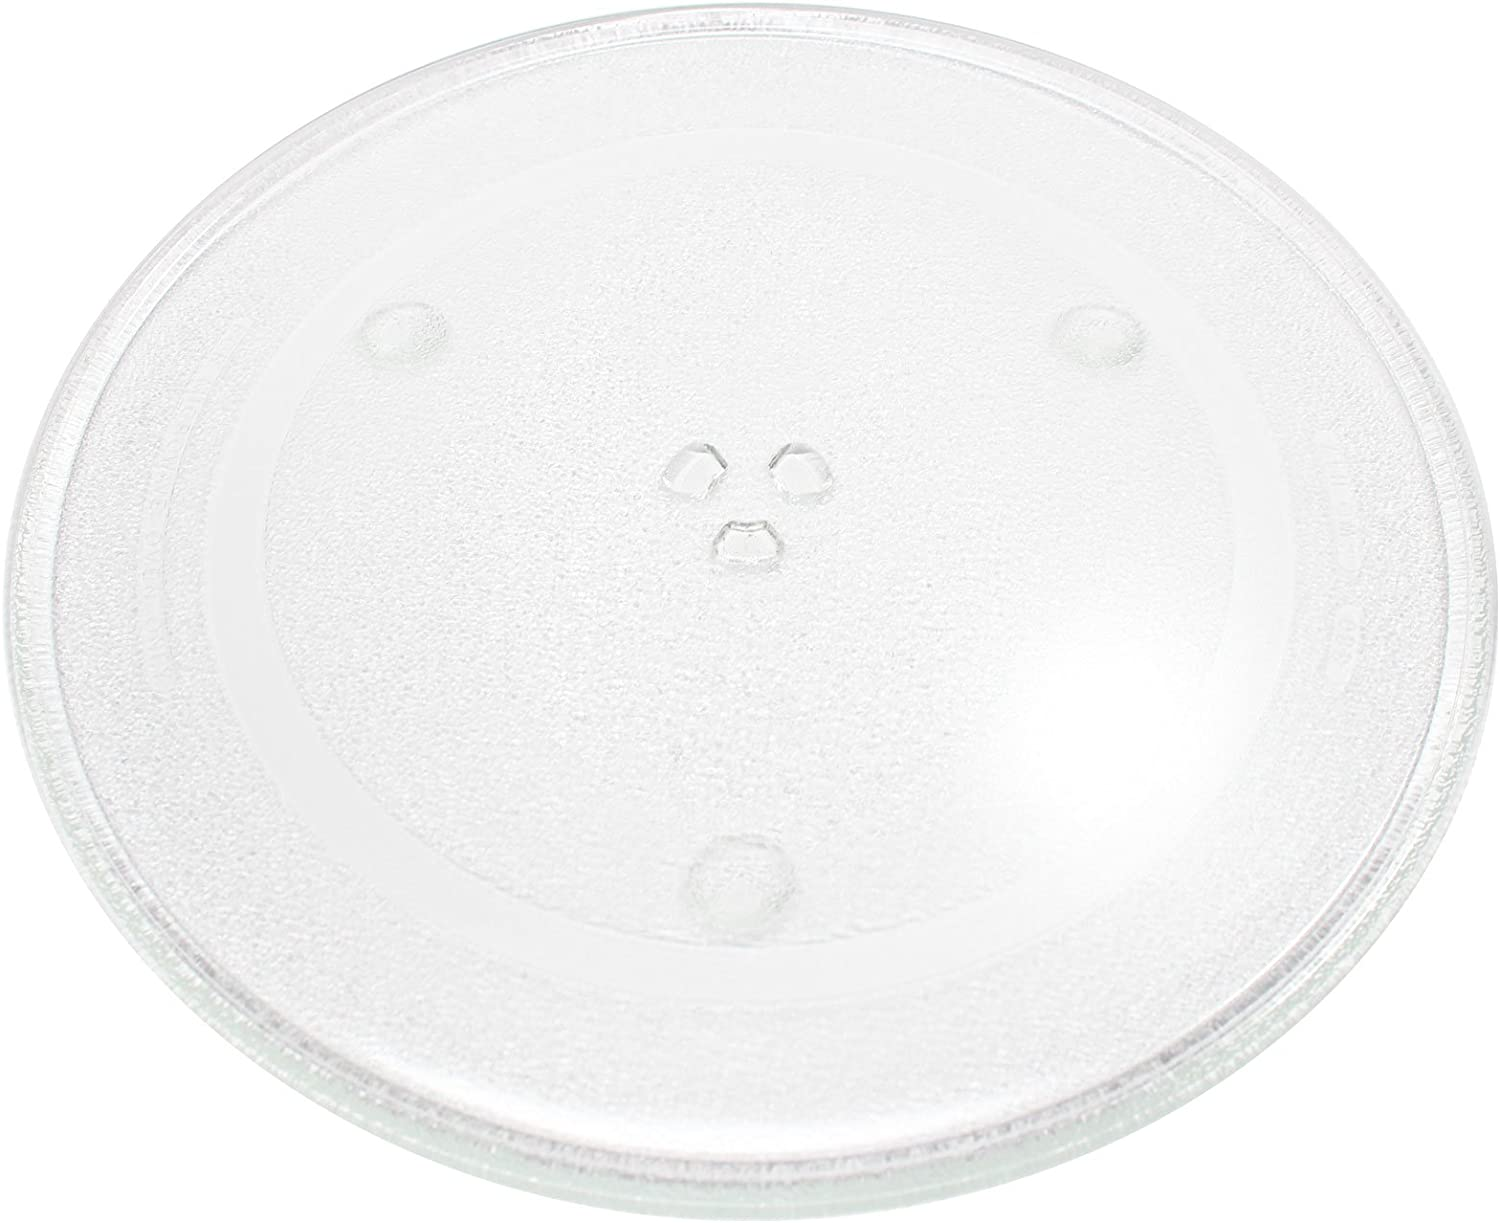 "Replacement for Panasonic NNSN797S Microwave Glass Plate - Compatible with Panasonic B06014W00AP Microwave Glass Turntable Tray - 14 7/8"" (380mm)"